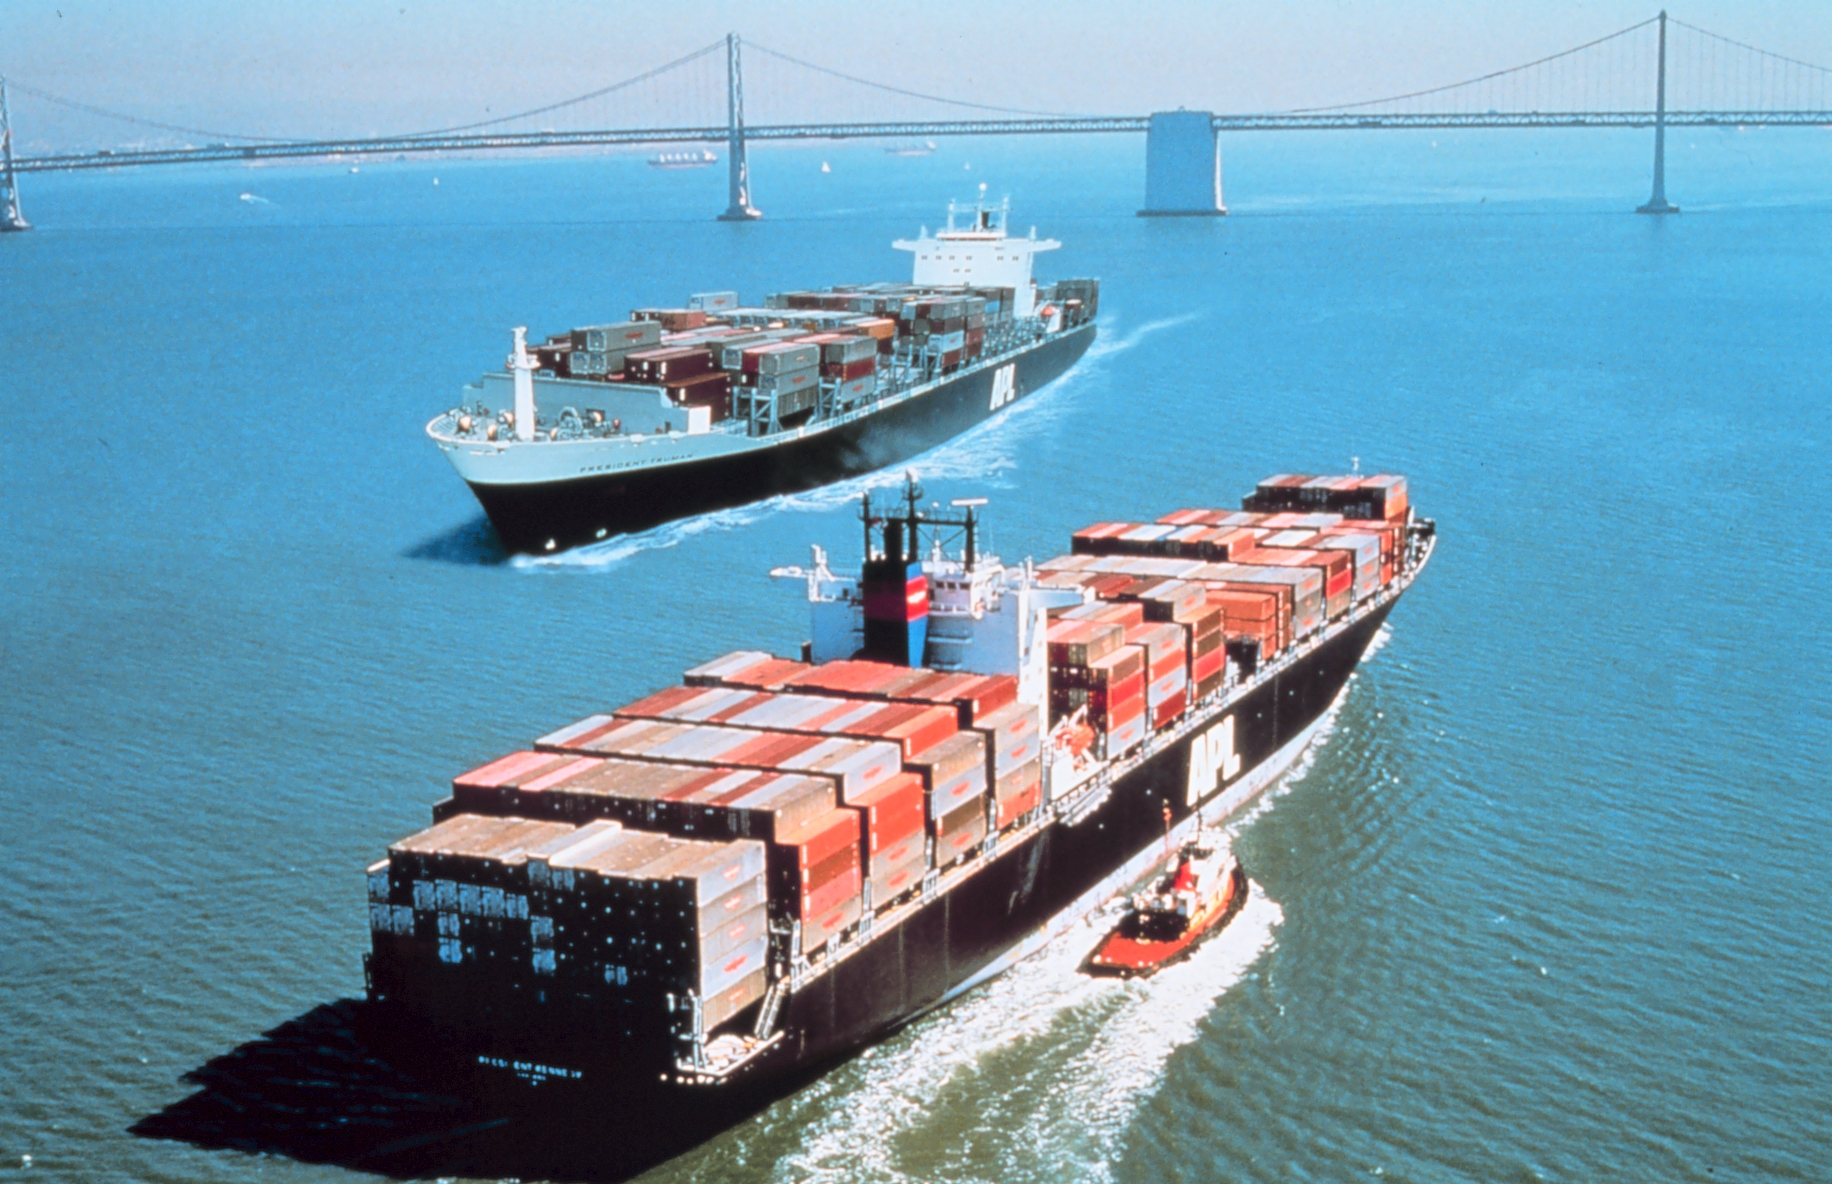 Two cargo ships in San Francisco Bay.